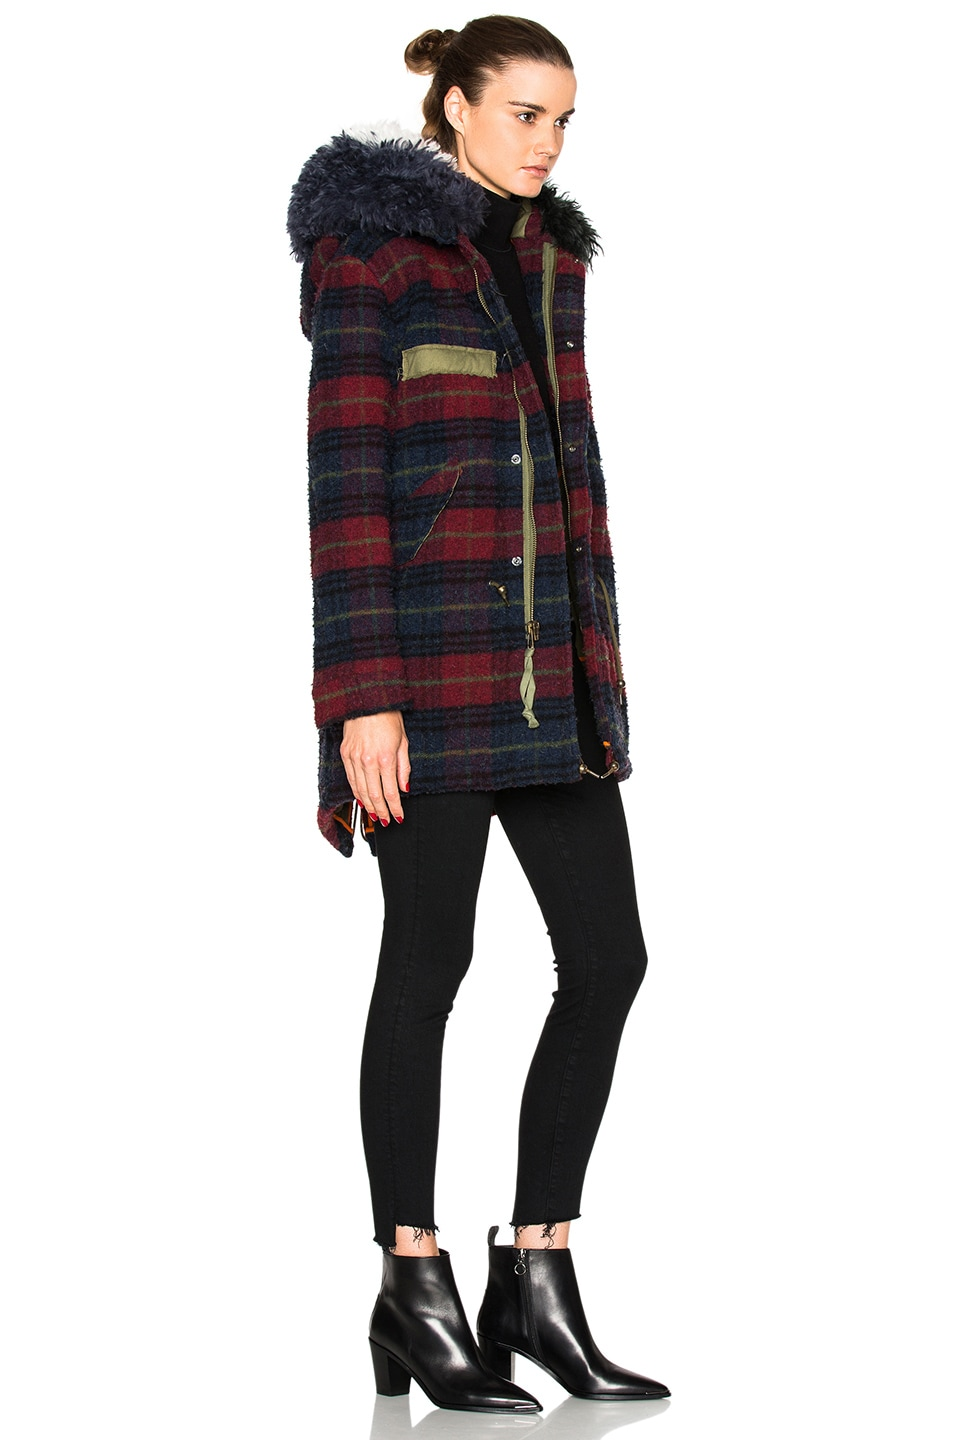 Image 4 of Mr & Mrs Italy Midi Parka Jacket in Plaid